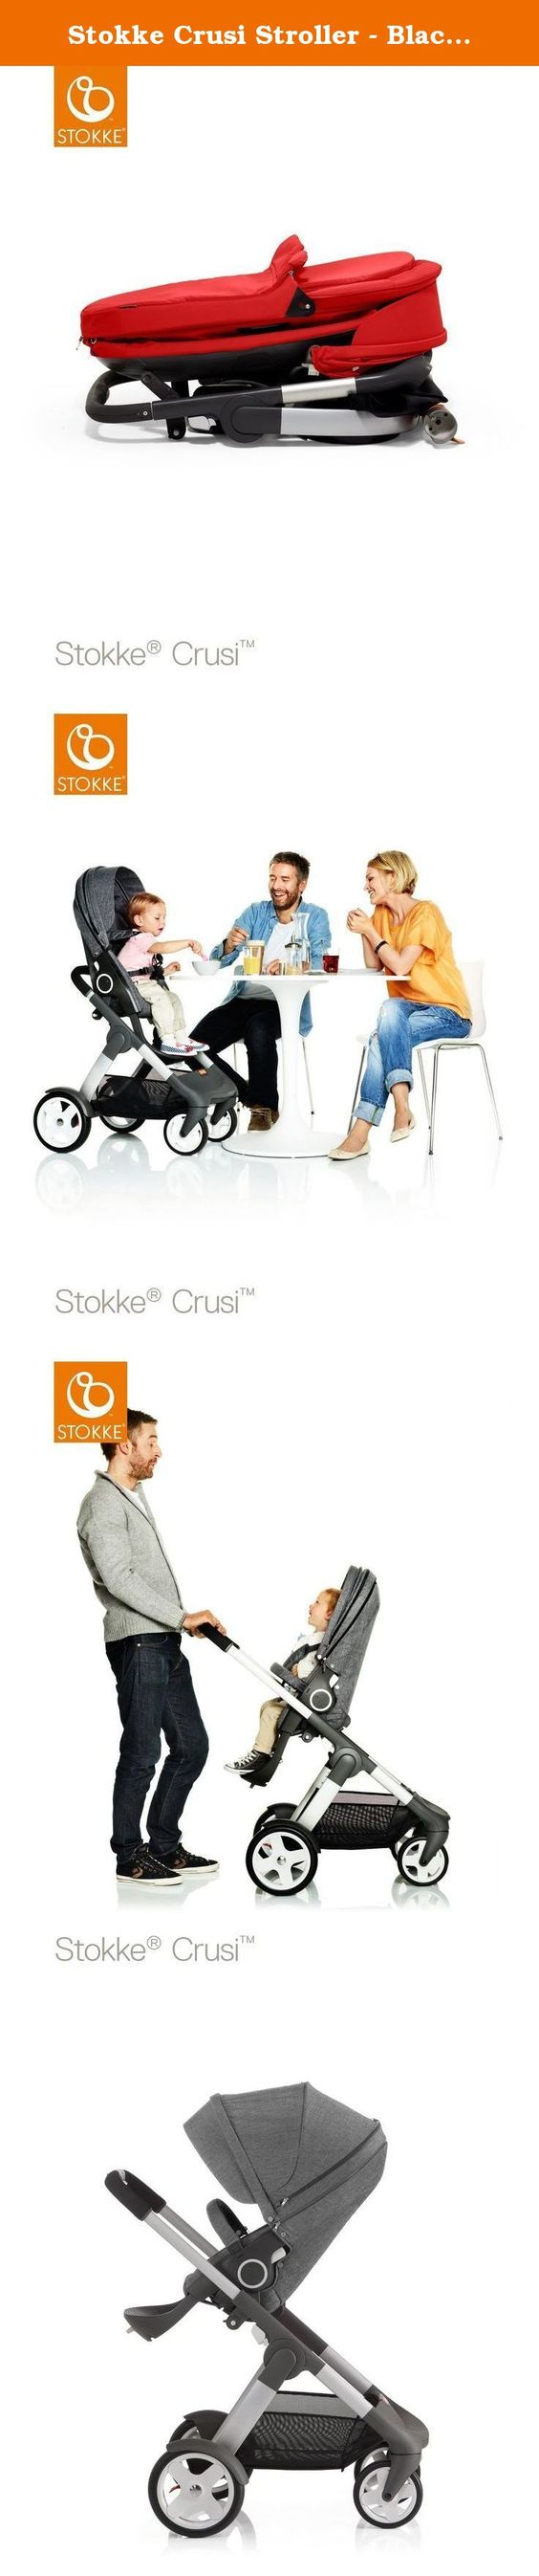 Stokke Crusi Stroller - Black Melange. With roomy dimensions, large storage space, and unrivaled suspension, the Stokke Crusi stroller takes comfort to new heights. Lifting your baby higher, Stokke Crusi offers a wide range of configurations to adapt to you and your baby's ever-changing needs. Stokke Crusi provides optimal ergonomics for parent and child. No stroller in its class matches the comfort or functionality of Stokke Crusi. The large and comfortable cot is suited to use from…